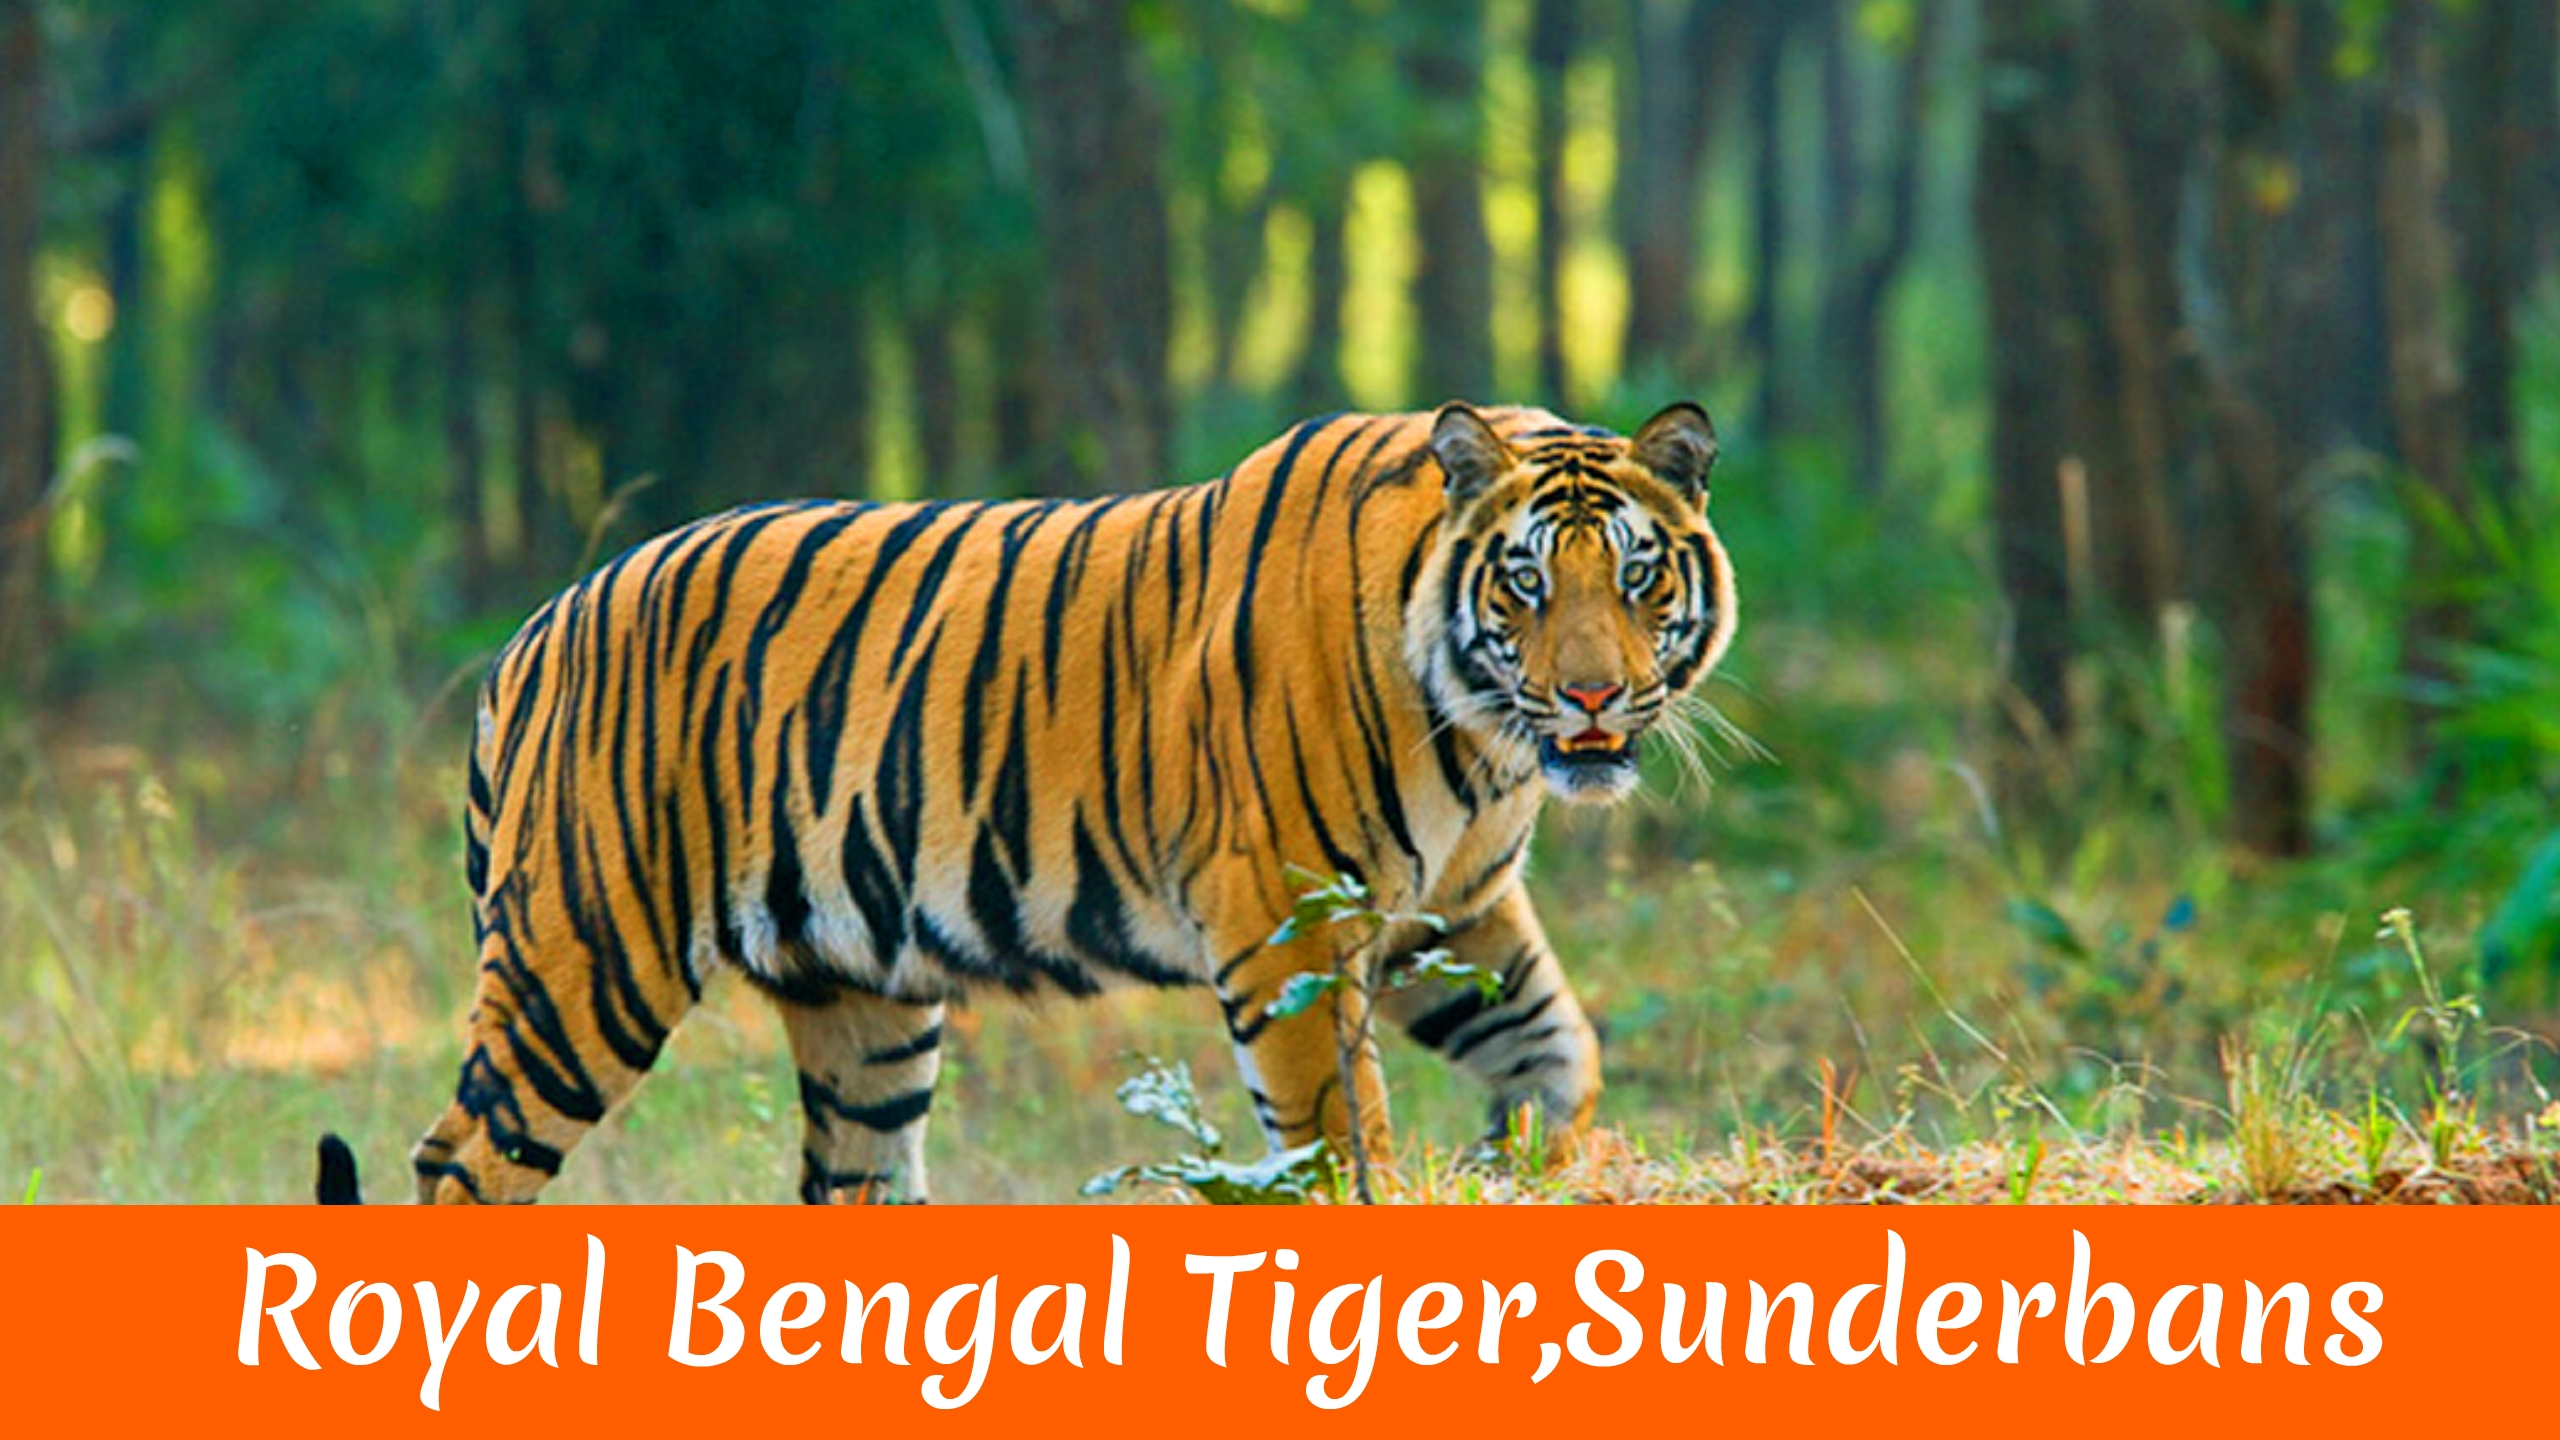 Royal Bengal Tiger Sunderbans